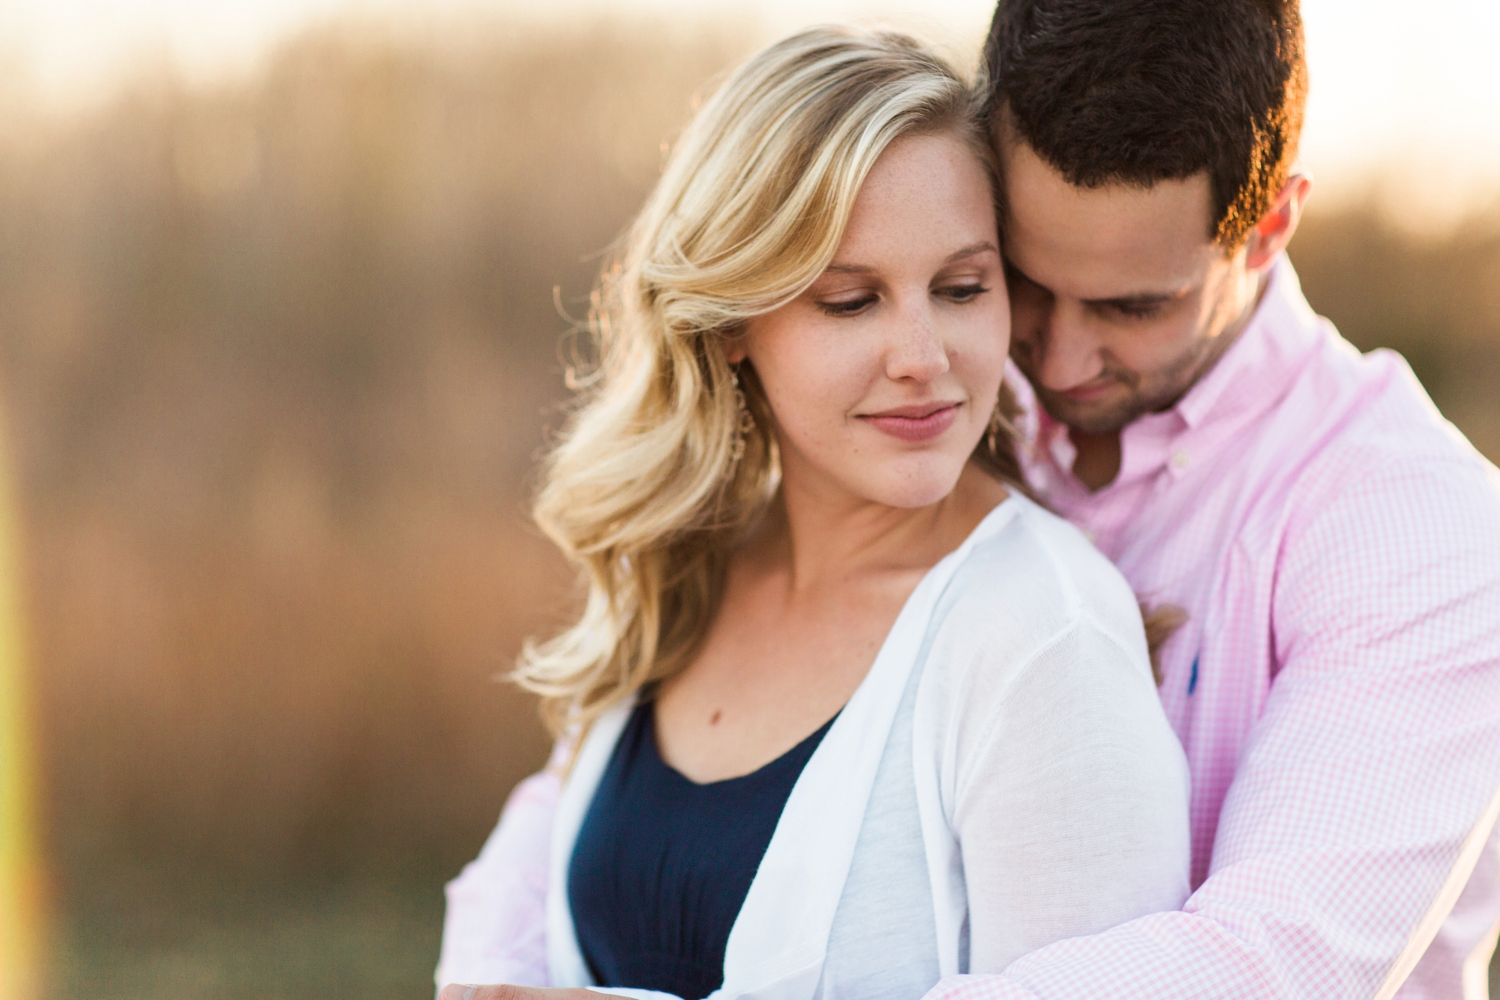 indianapolis_wedding_photographer_golden_hour_engagement_chloe_luka_photography_6139.jpg